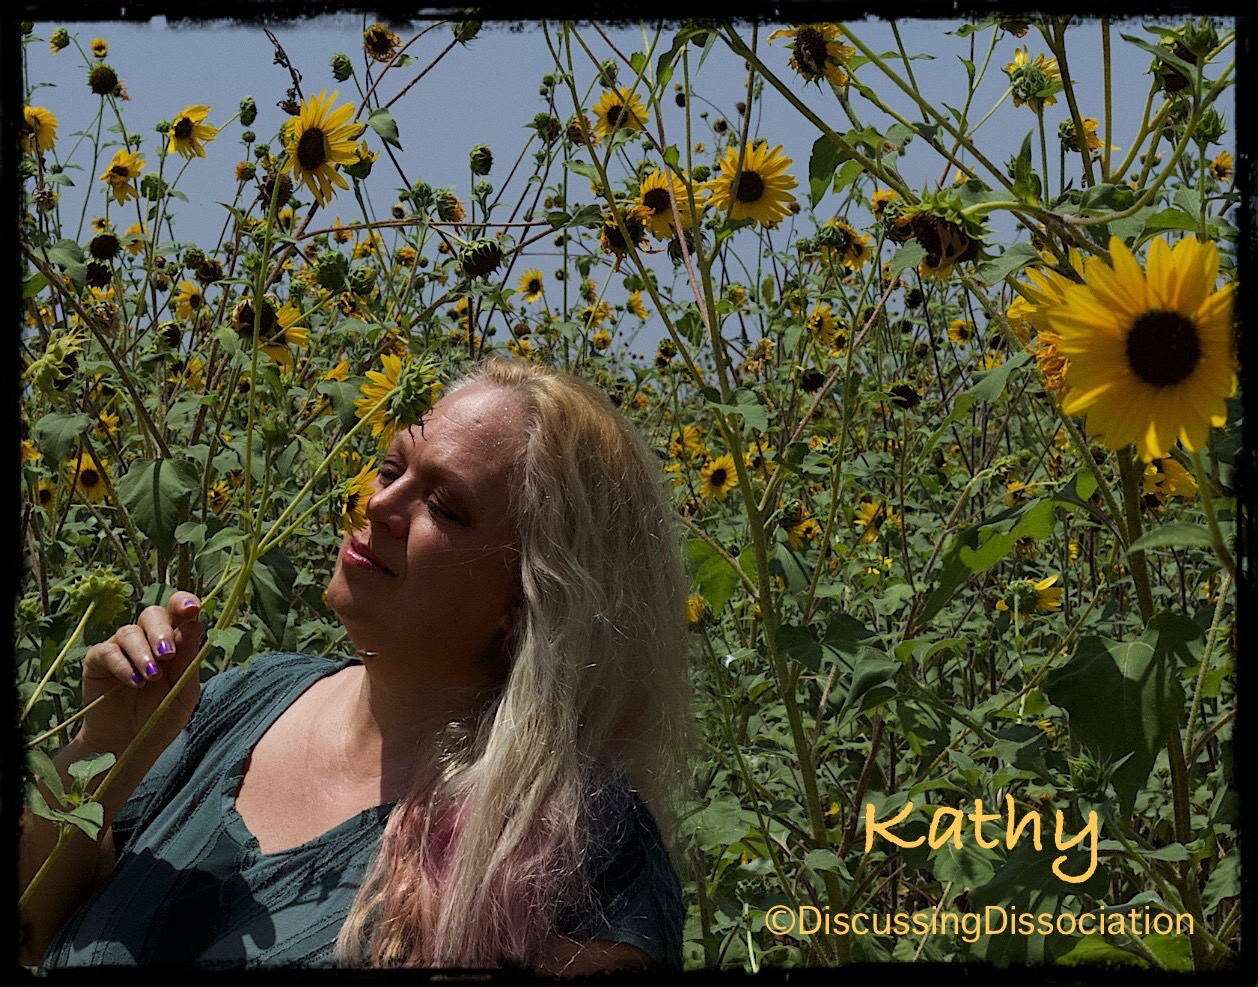 Kathy looking at sunflowers